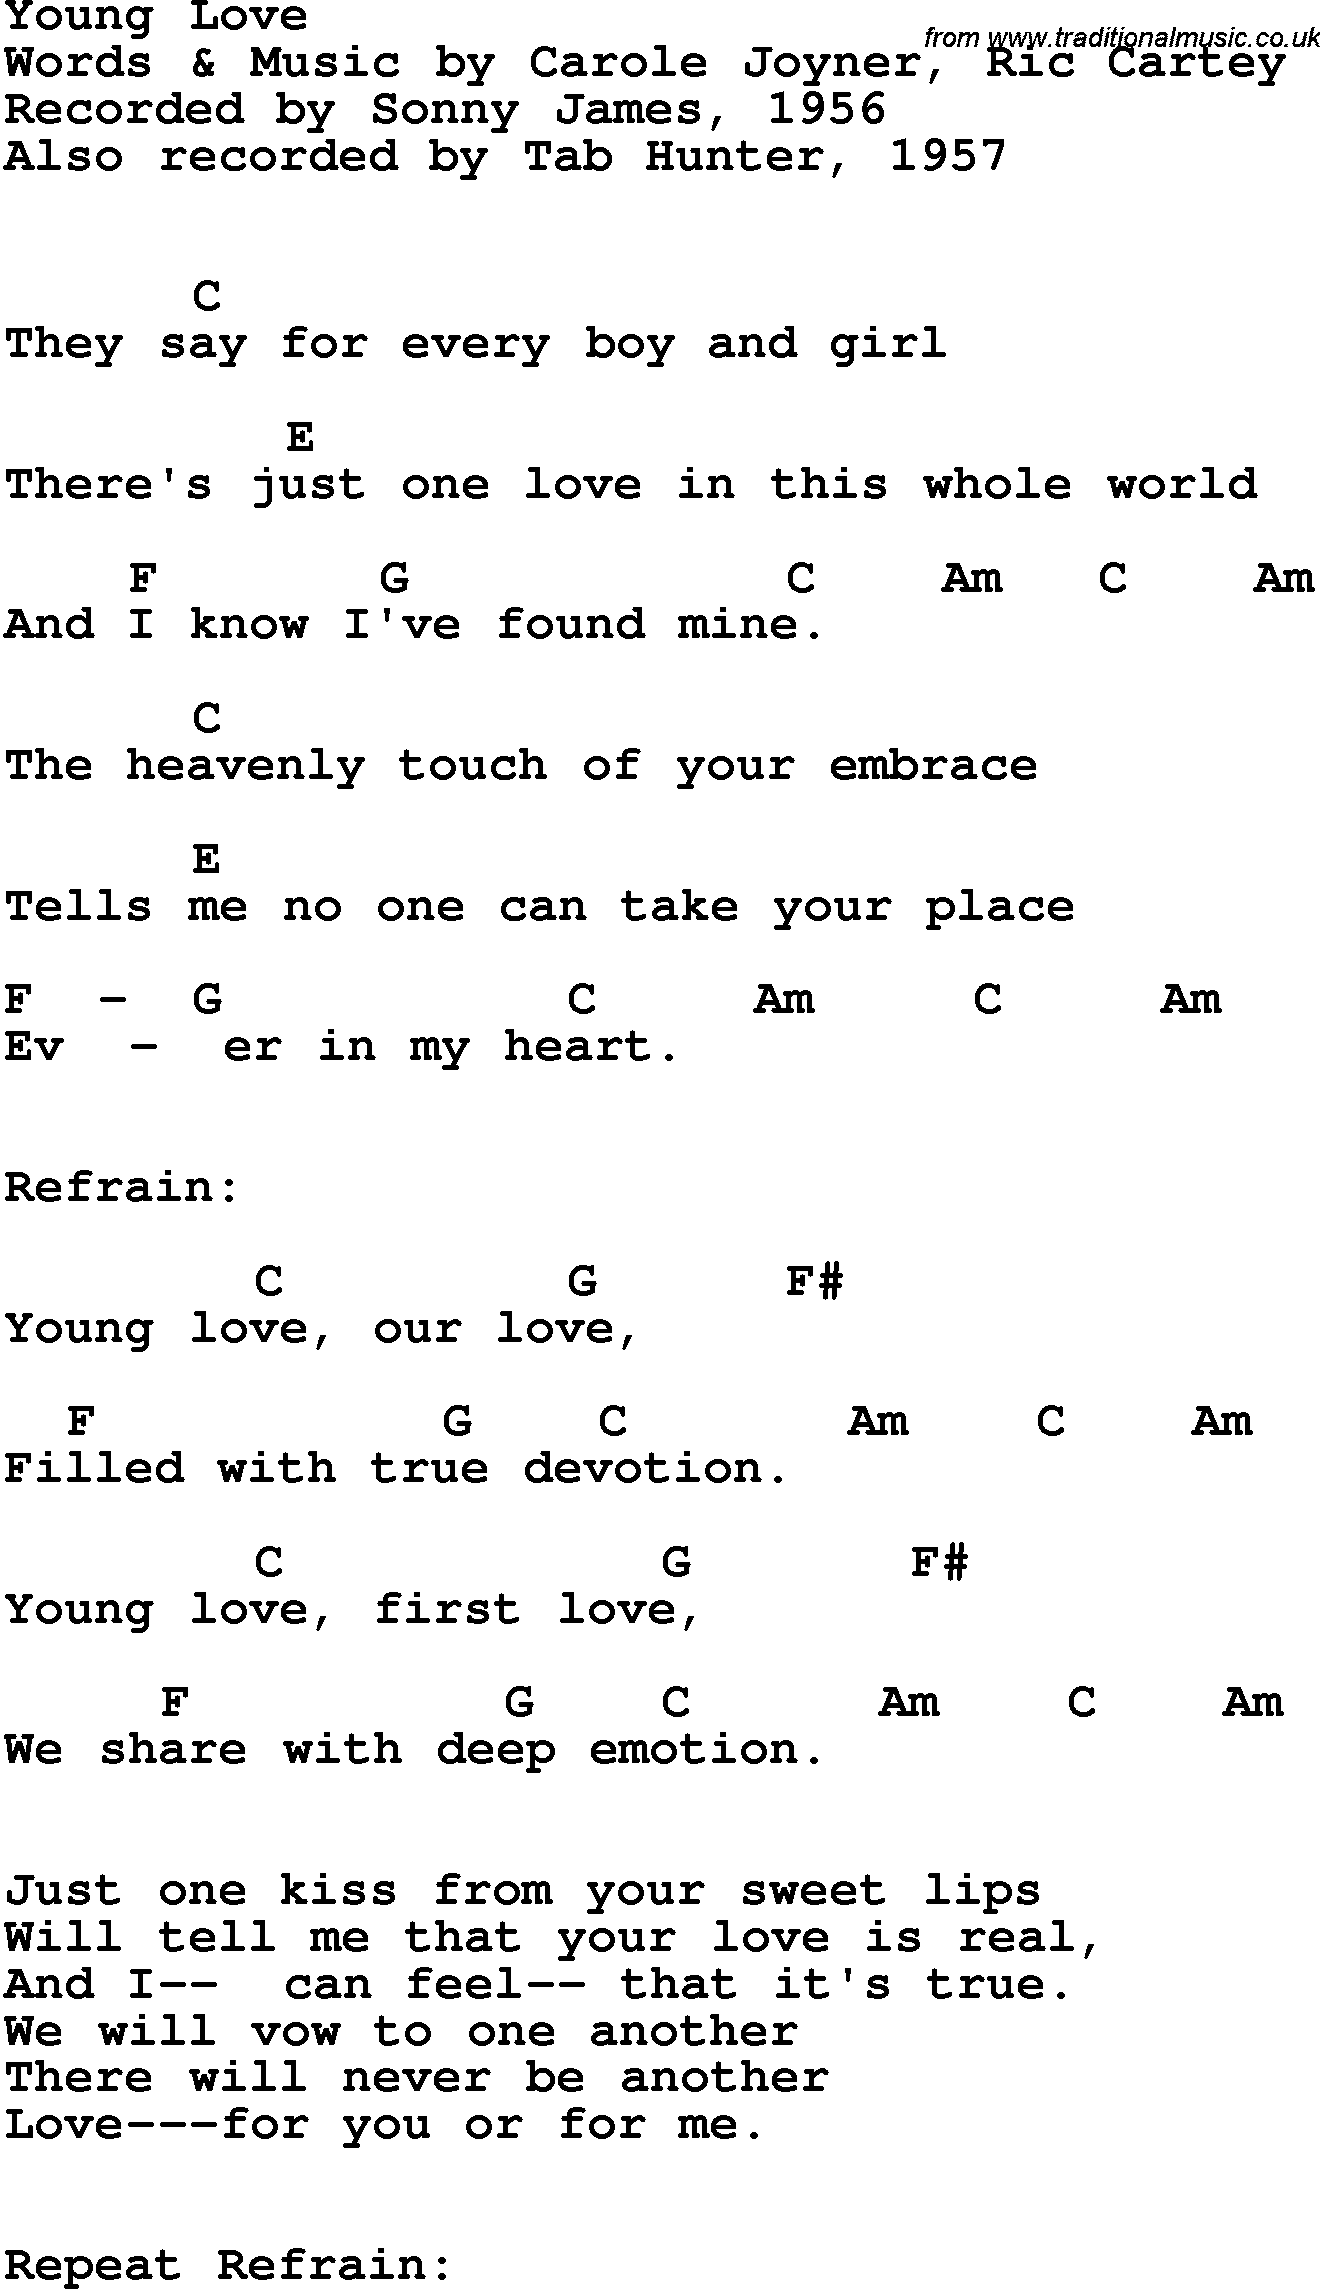 Song Lyrics With Guitar Chords For Young Love Sonny James 1956